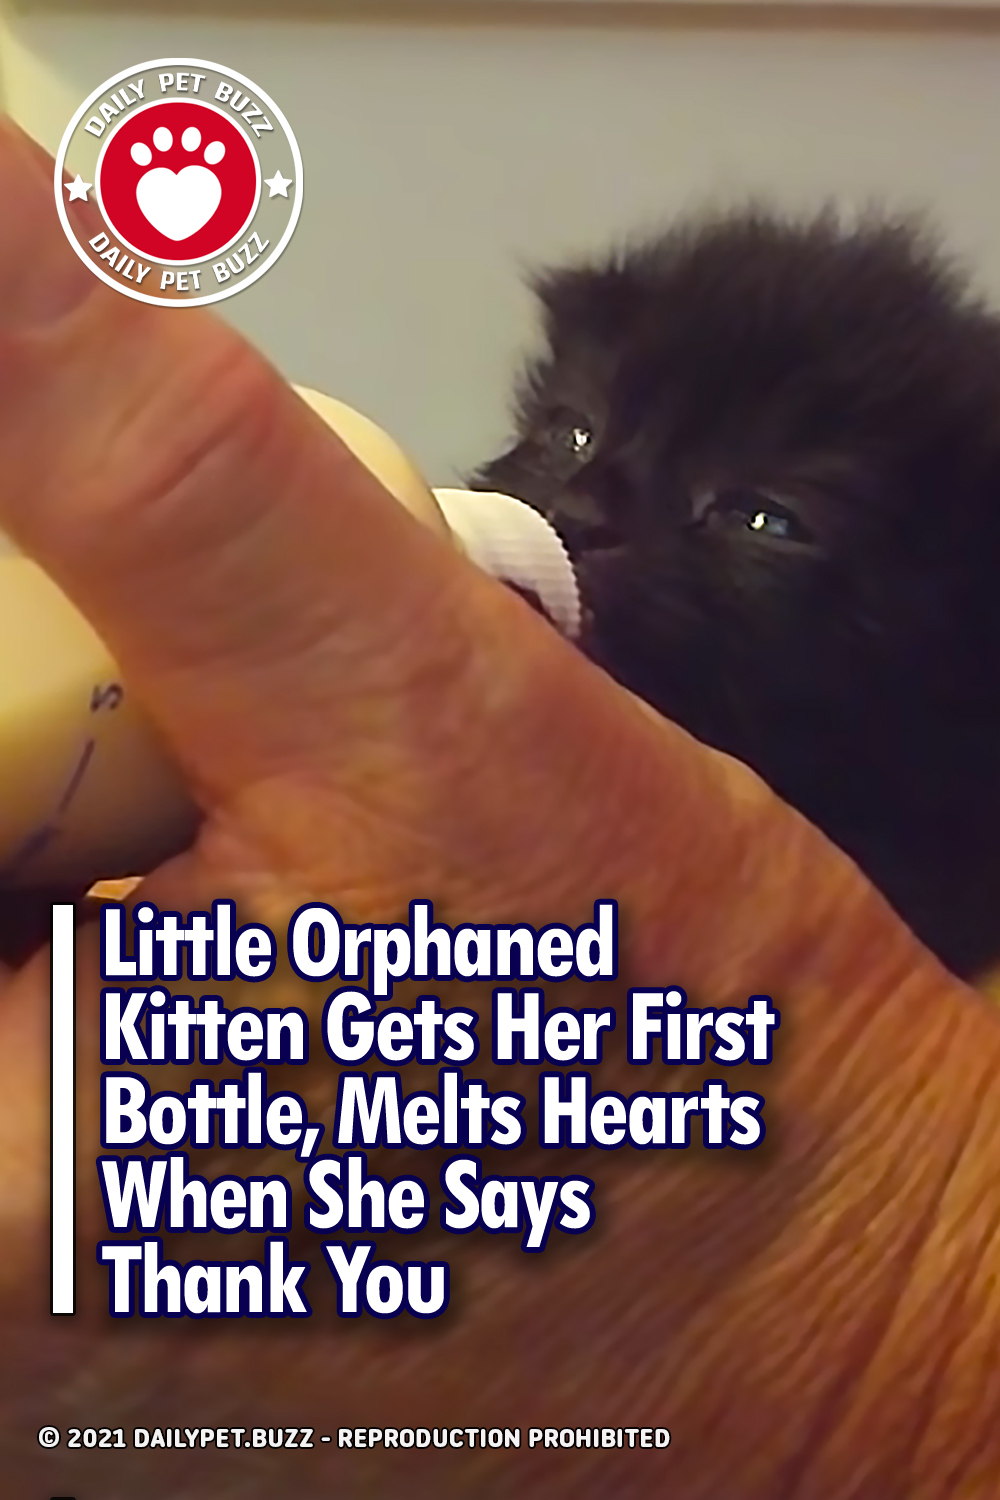 Little Orphaned Kitten Gets Her First Bottle, Melts Hearts When She Says Thank You